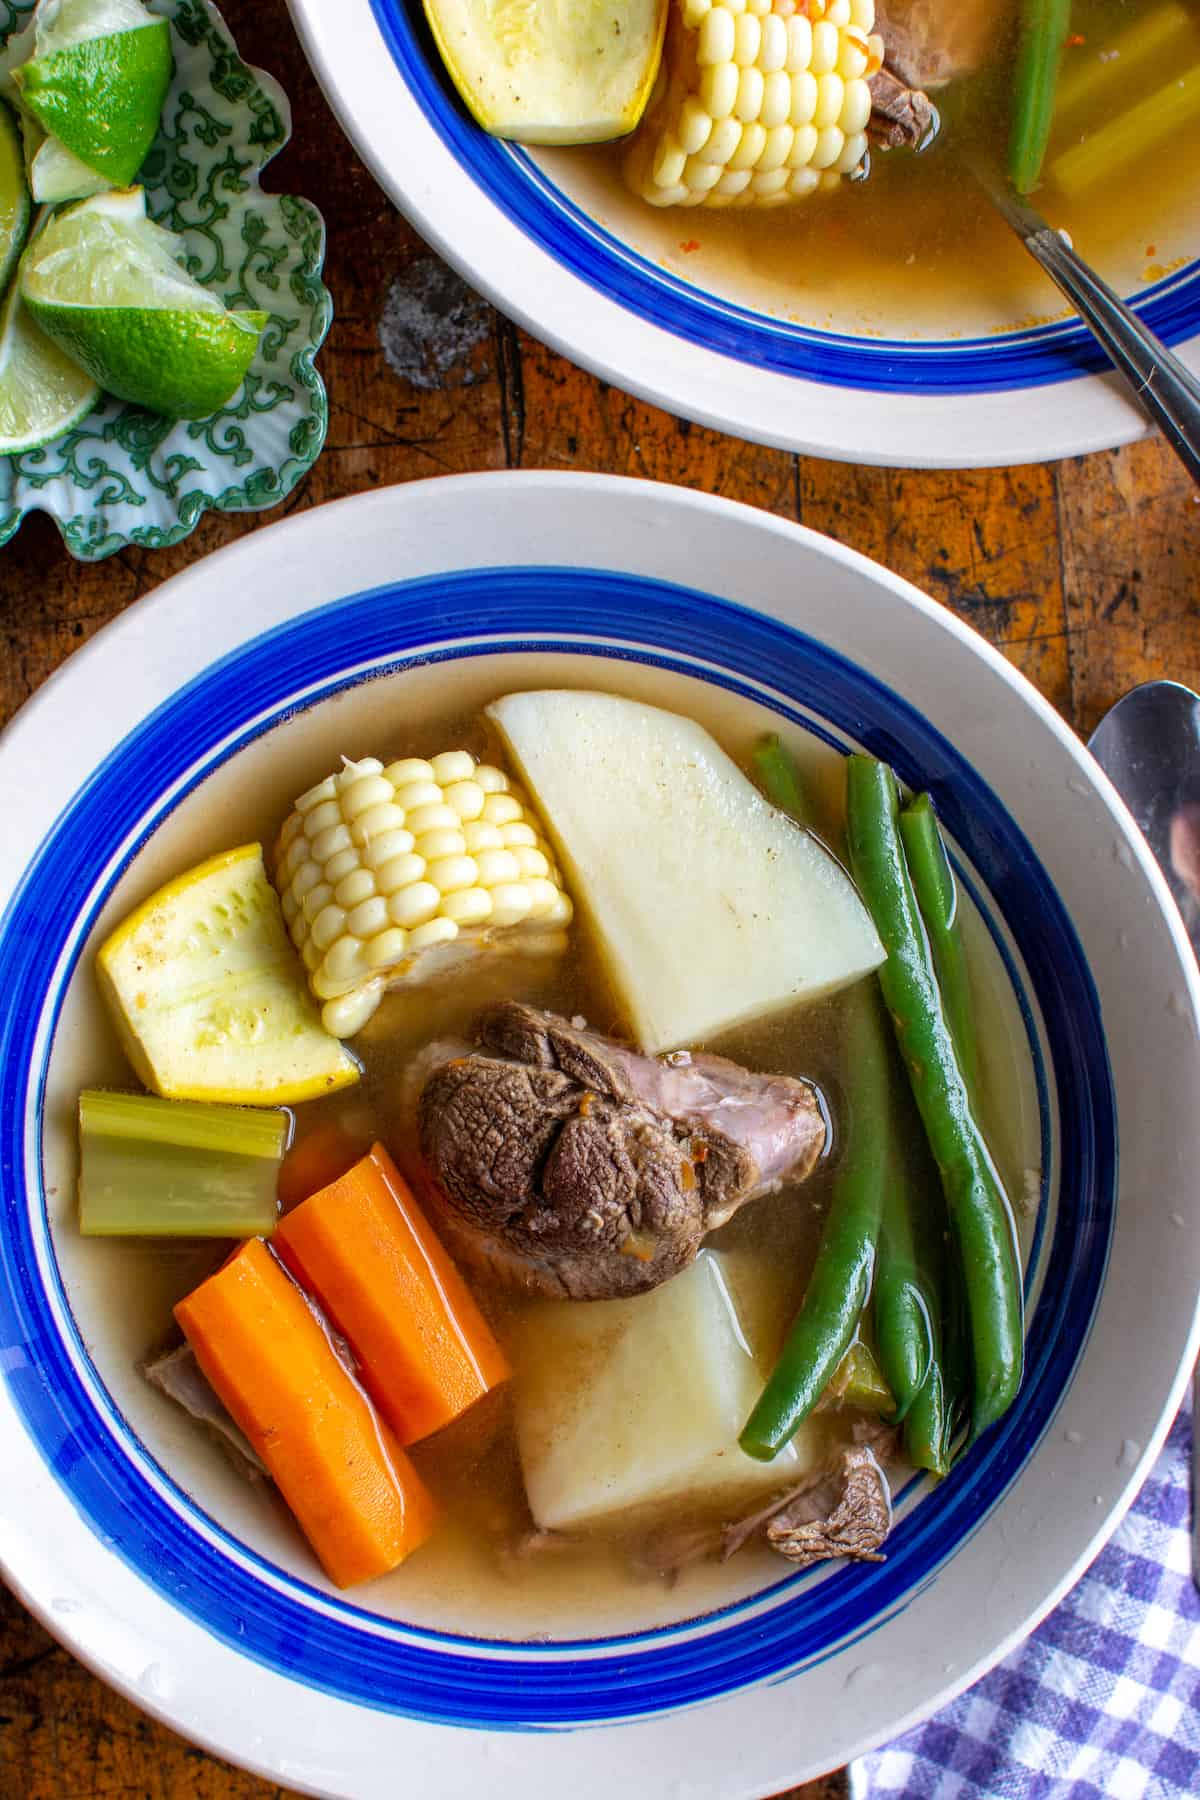 A white bowl with a blue rim filled with Caldo de Res, a Mexican beef and vegetable soup with beef, potatoes, carrots, and green beans.